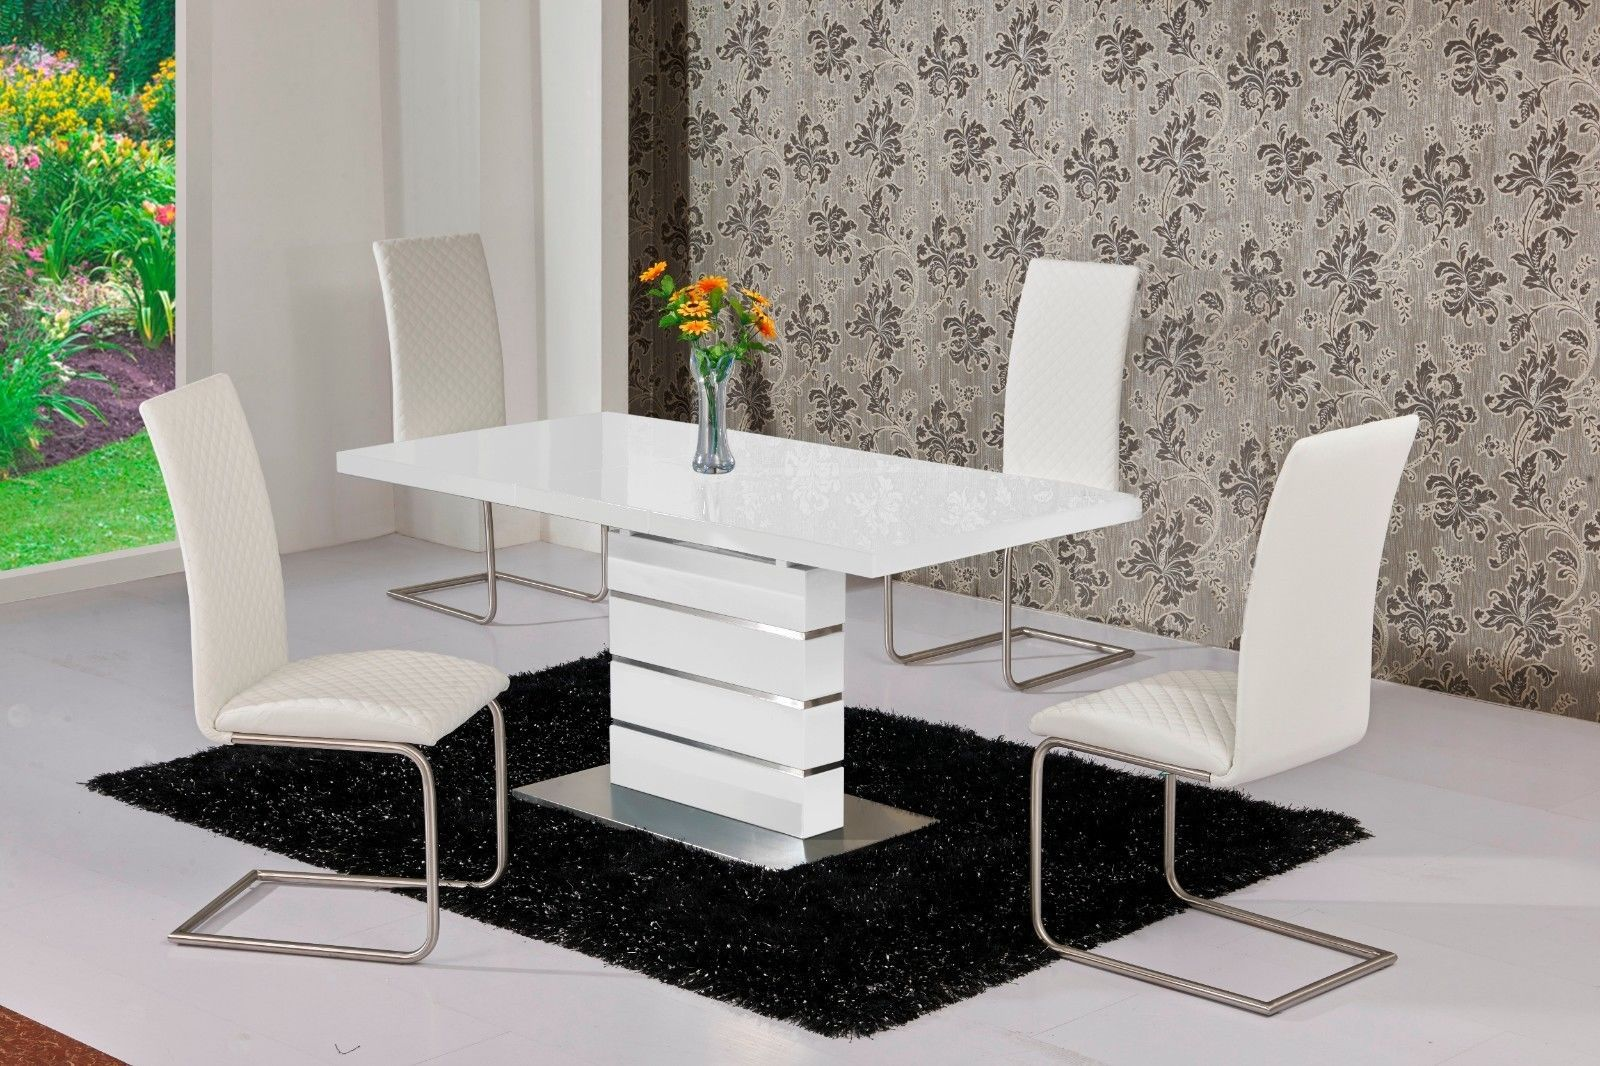 Mace high gloss extending 120 160 dining table chair set for White extending dining table